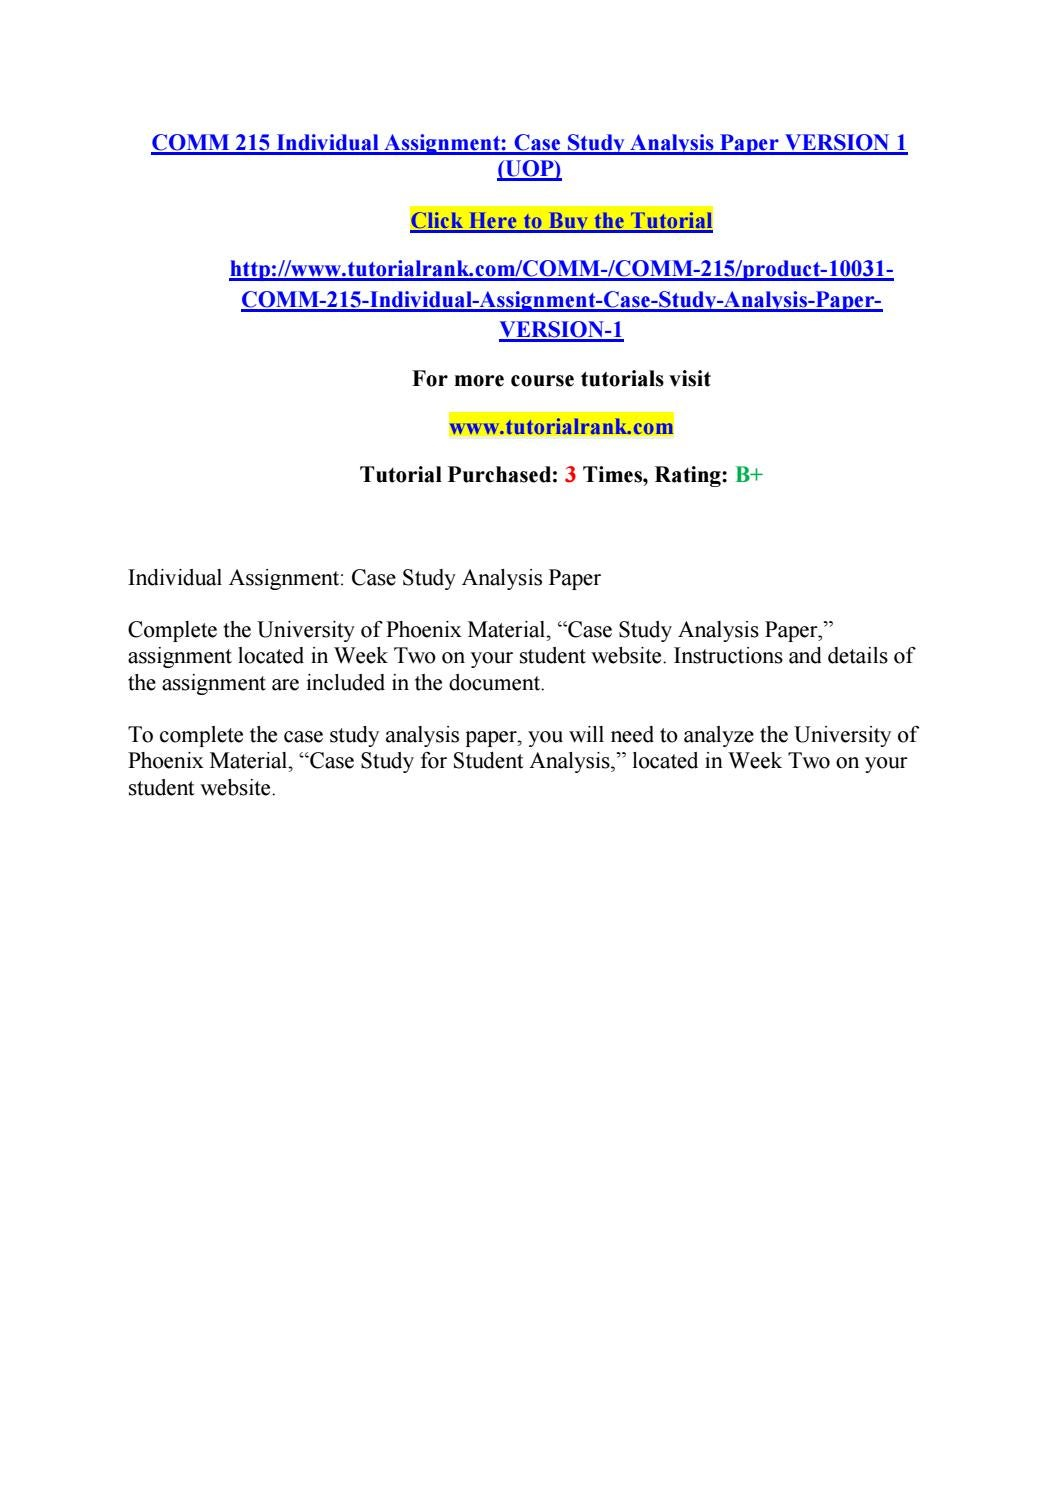 Comm 215 individual assignmen case study analysis paper version 1